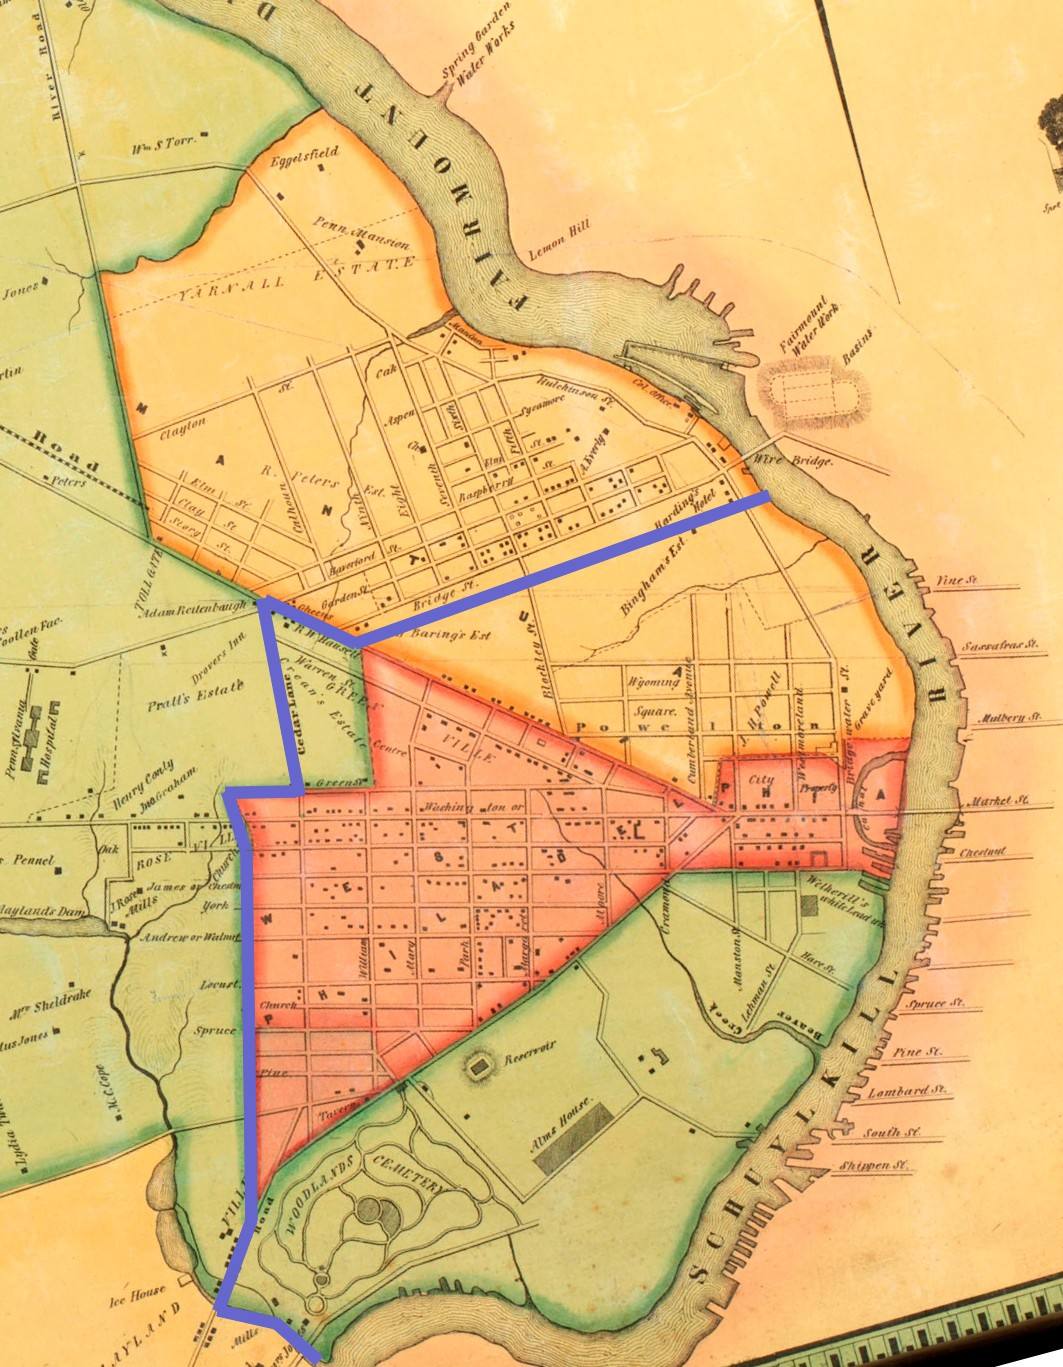 section of rea and miller 1849 map with blue line added to show the border of borough of west philadelphia in 1837